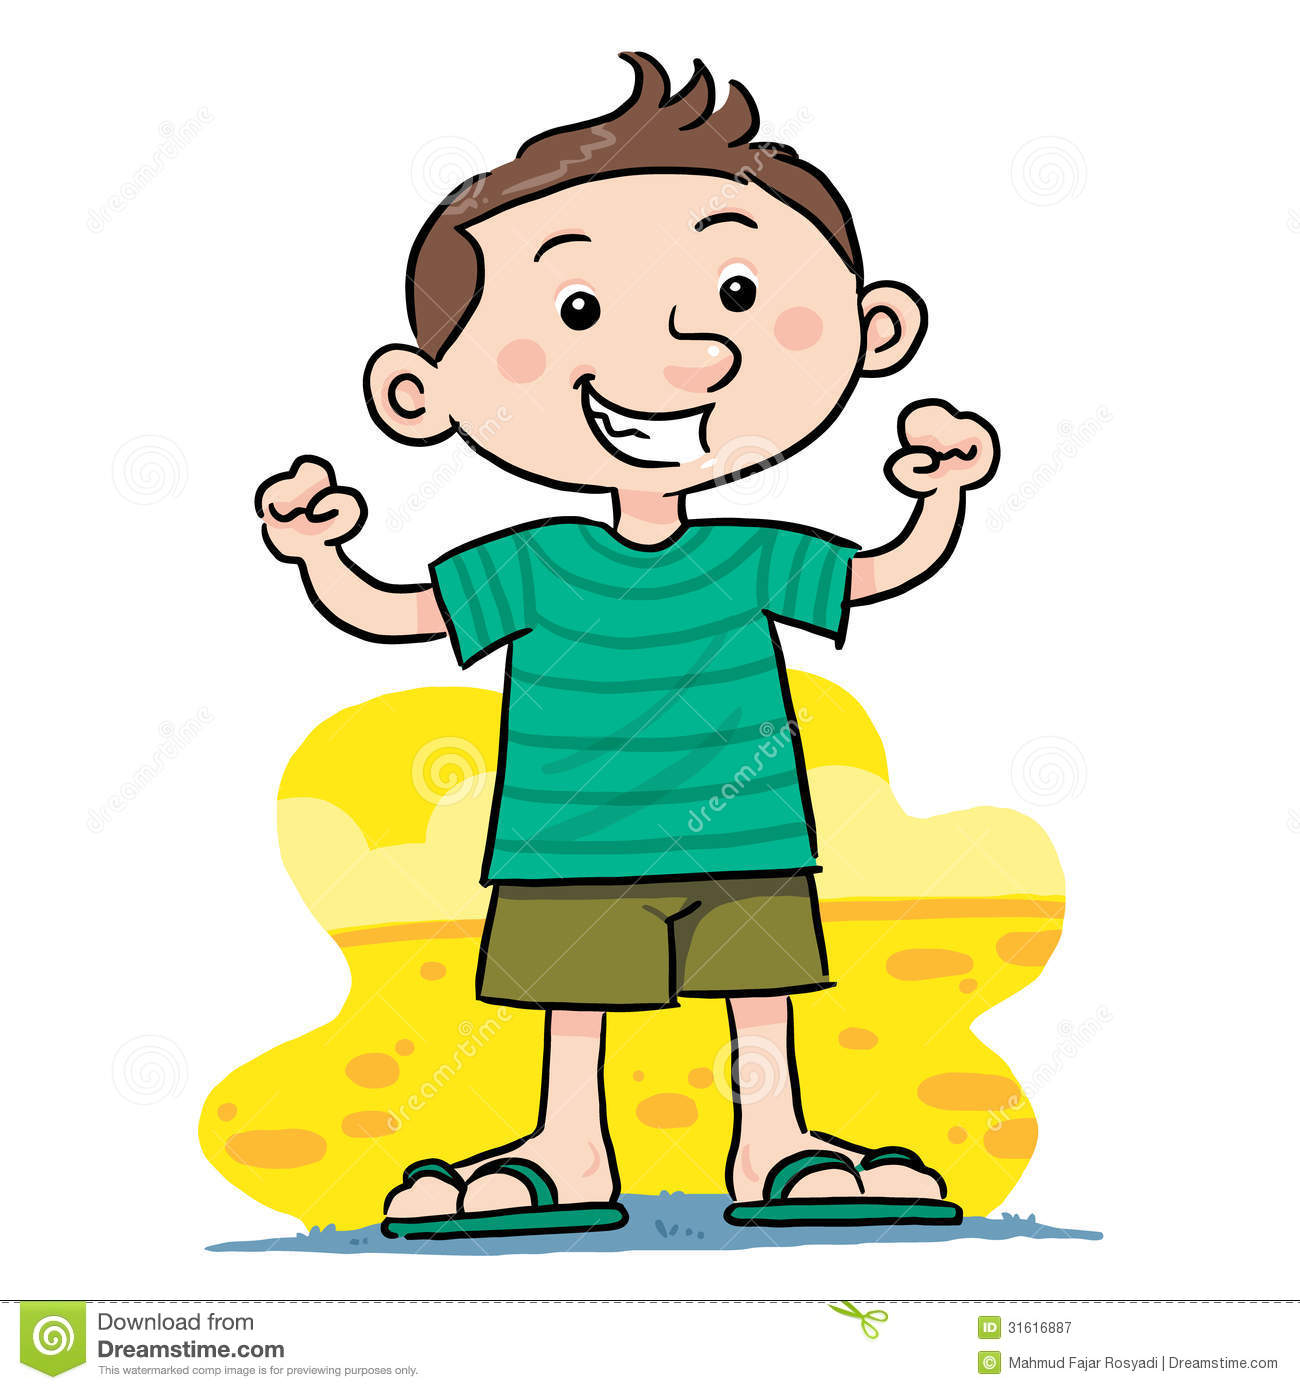 Health clipart boy. Person free download best